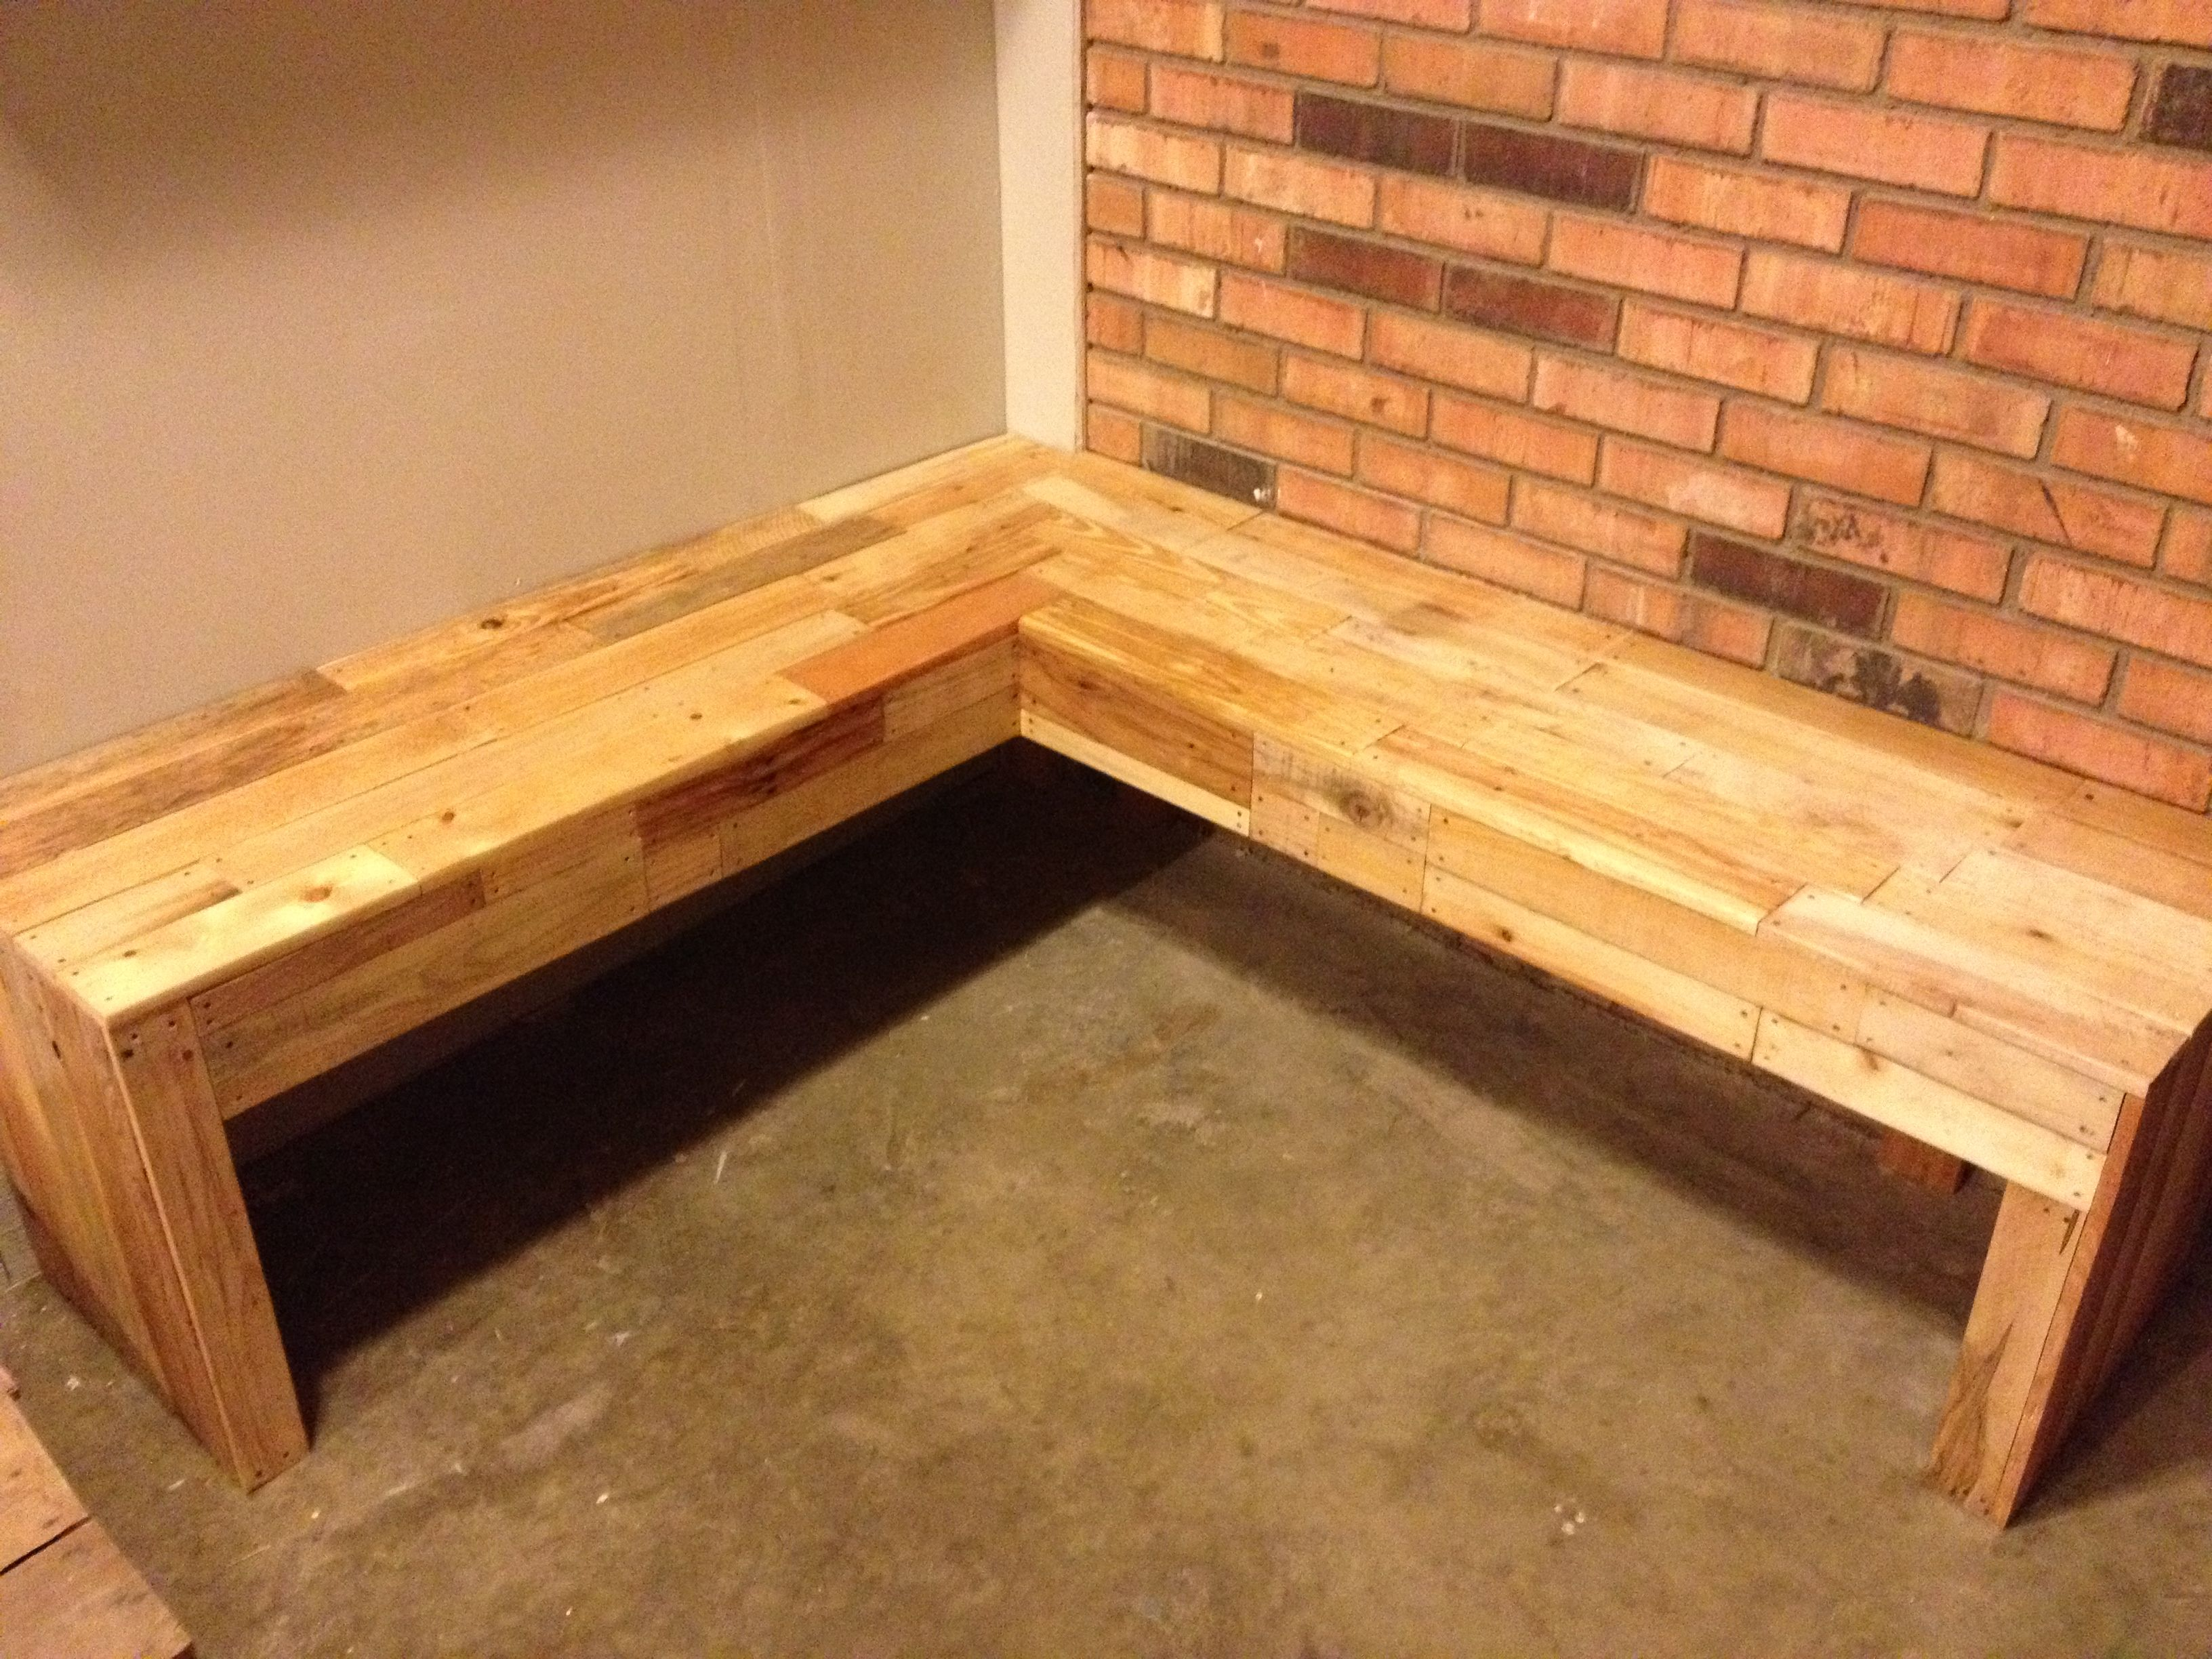 Corner Bench Made From Pallets Completed Projects Pinterest Corner Bench Pallets And Bench